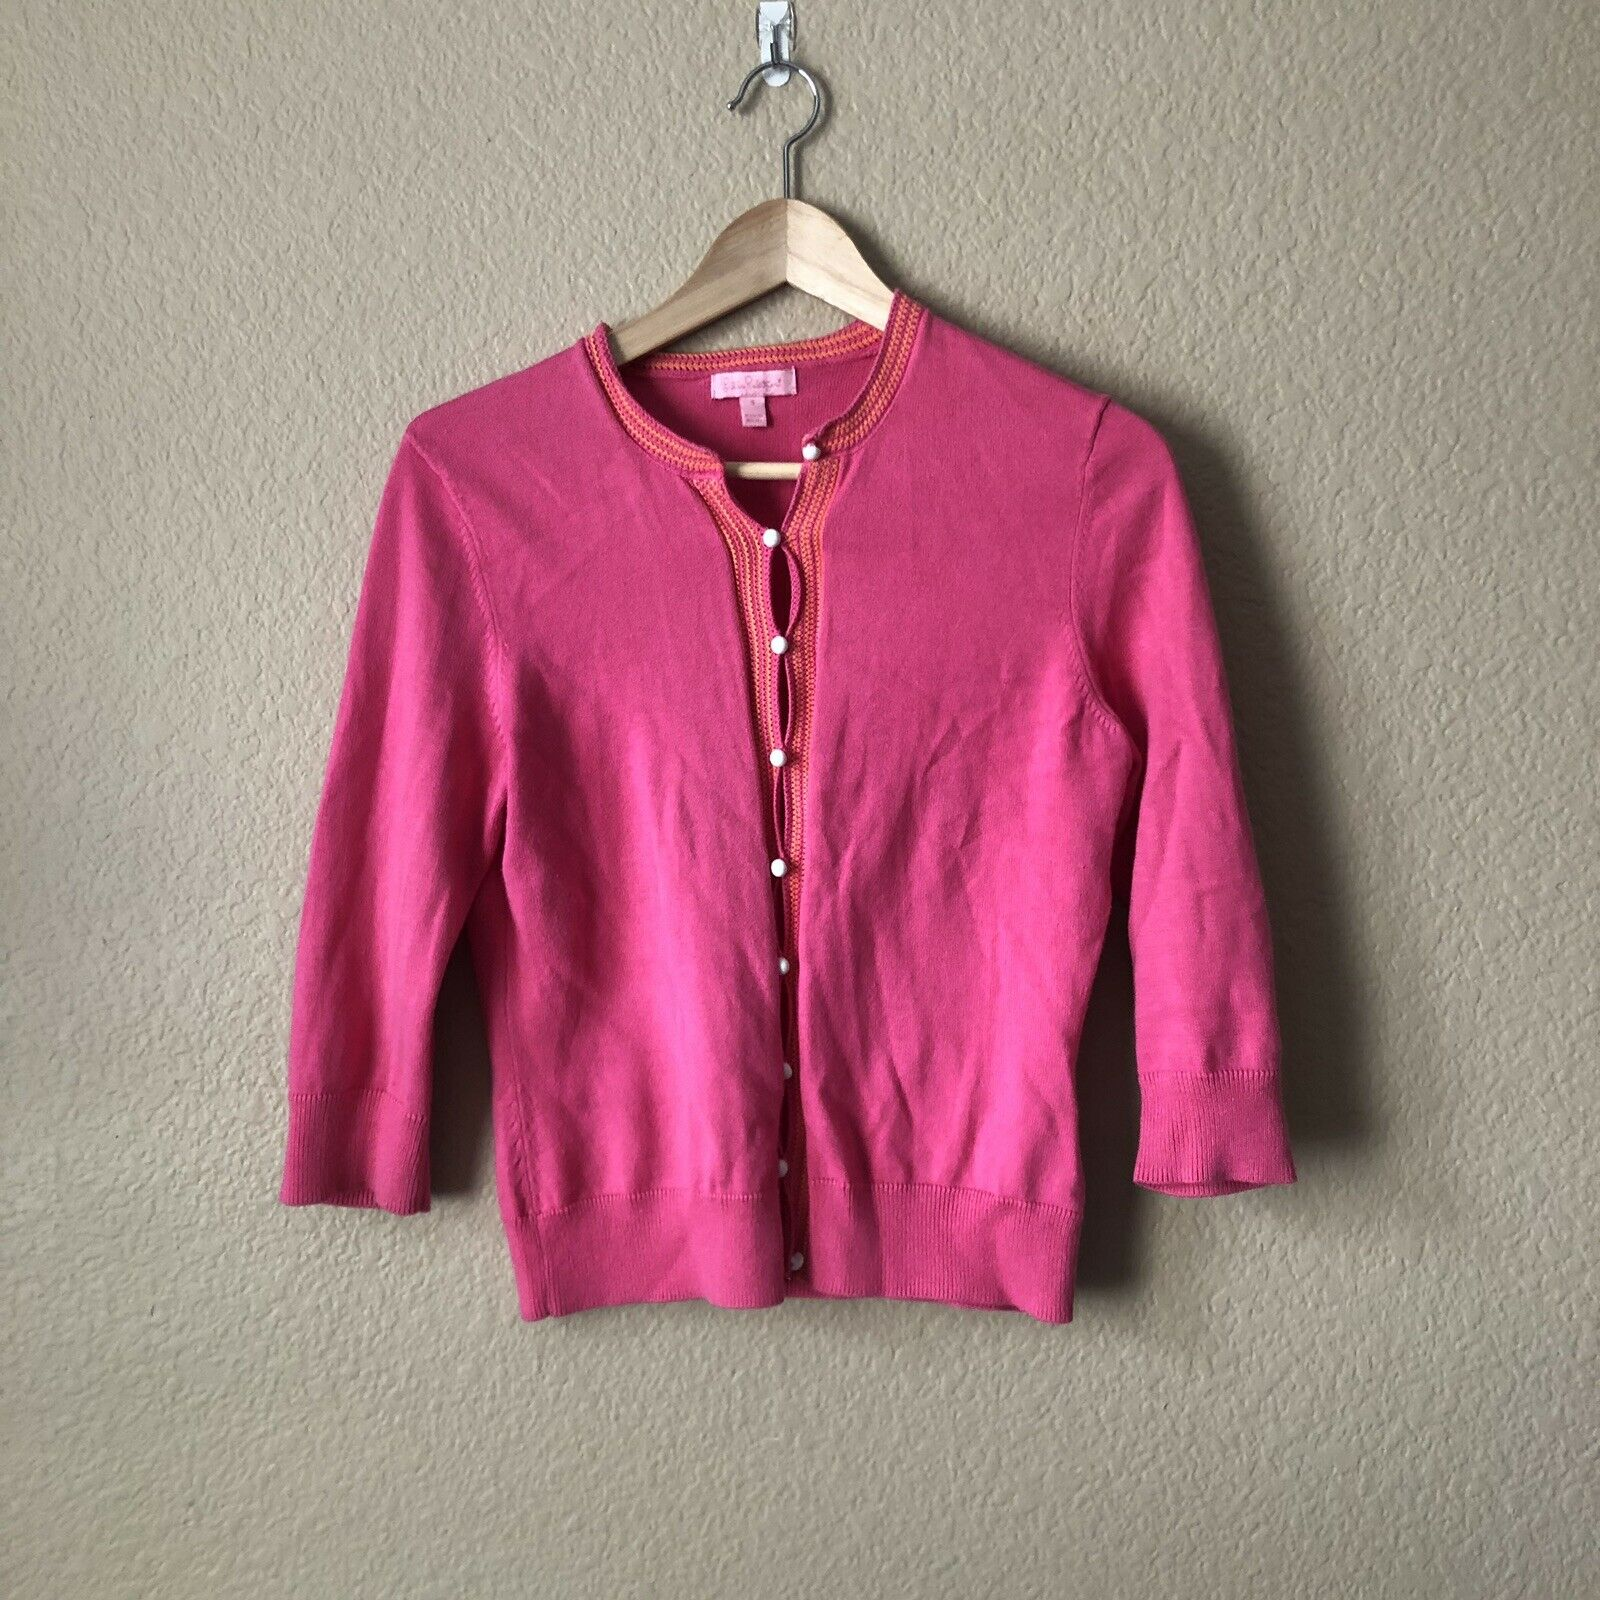 Lilly Pulitzer Pink 100% Cotton Cardigan Sweater Size Small